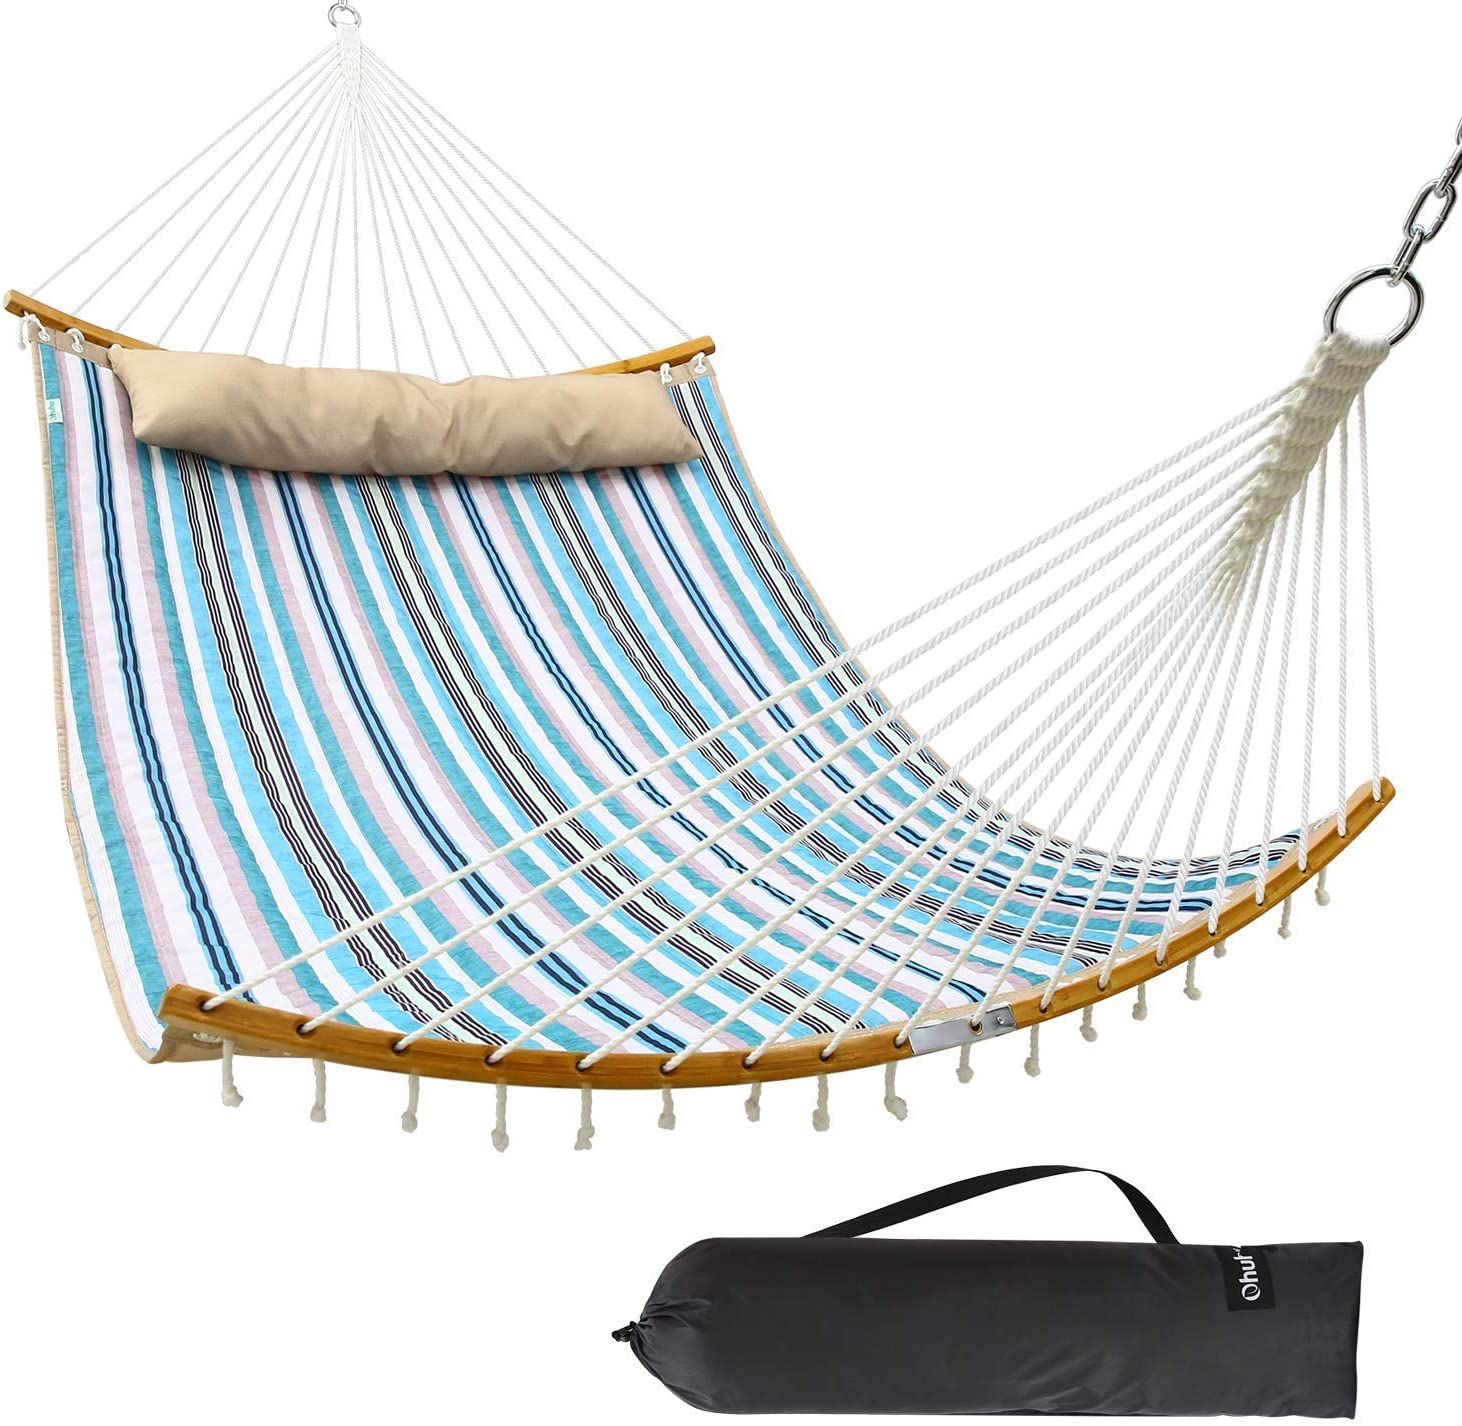 "Ohuhu Double Hammock Quilted Fabric Swing with Strong Curved-Bar Bamboo & Detachable Pillow, 55""x75"" Large Hammocks with Carrying Bag, 4.6'W x 6.2'L, Blue & White Stripe : Garden & Outdoor"